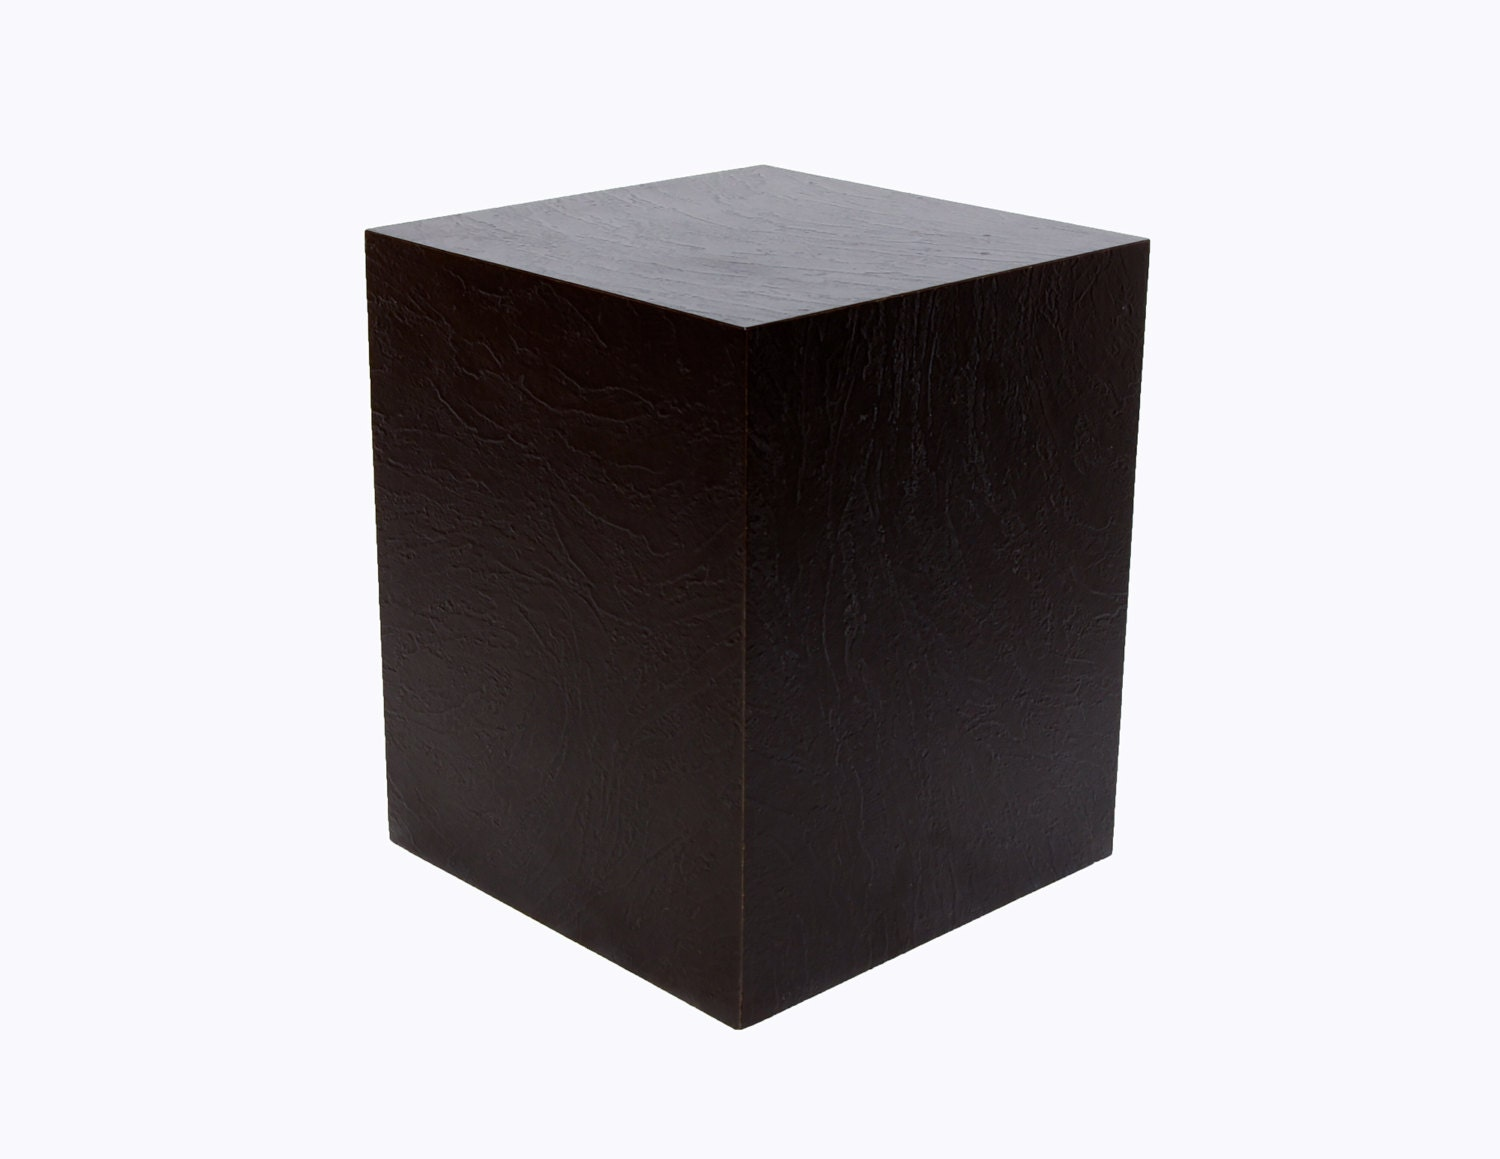 Black Slate Cube Pedestal Formica Side Table 1970s Mid Century : ilfullxfull564445885bdb2 from www.etsy.com size 1500 x 1159 jpeg 96kB